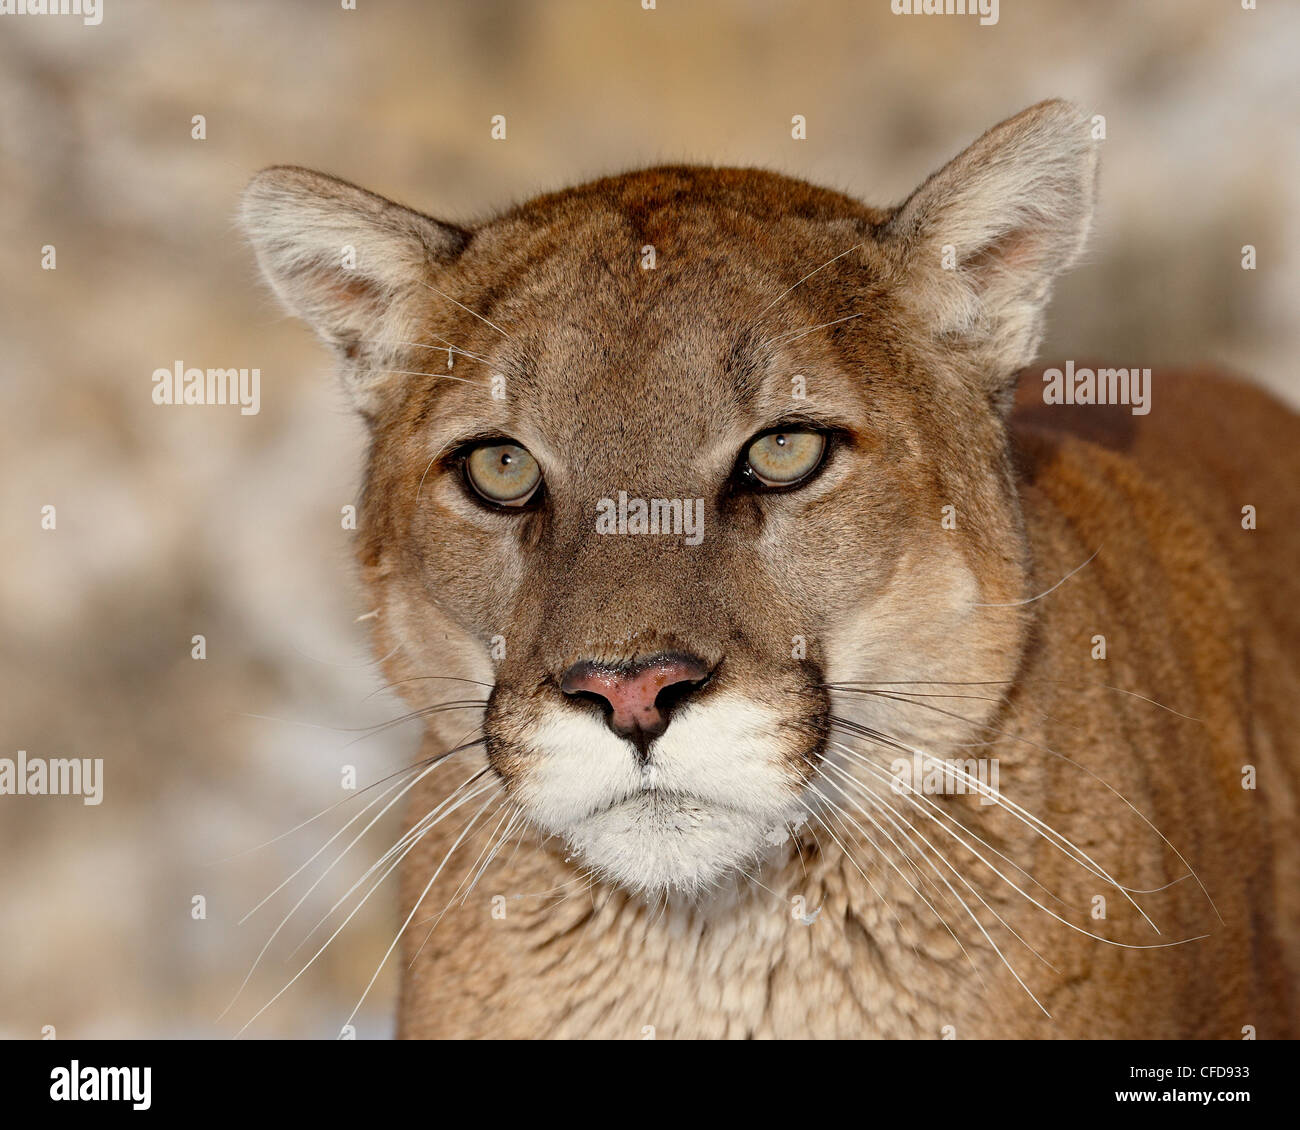 Mountain Lion (Cougar) (Felis concolor) in captivity, near Bozeman, Montana, United States of America, - Stock Image